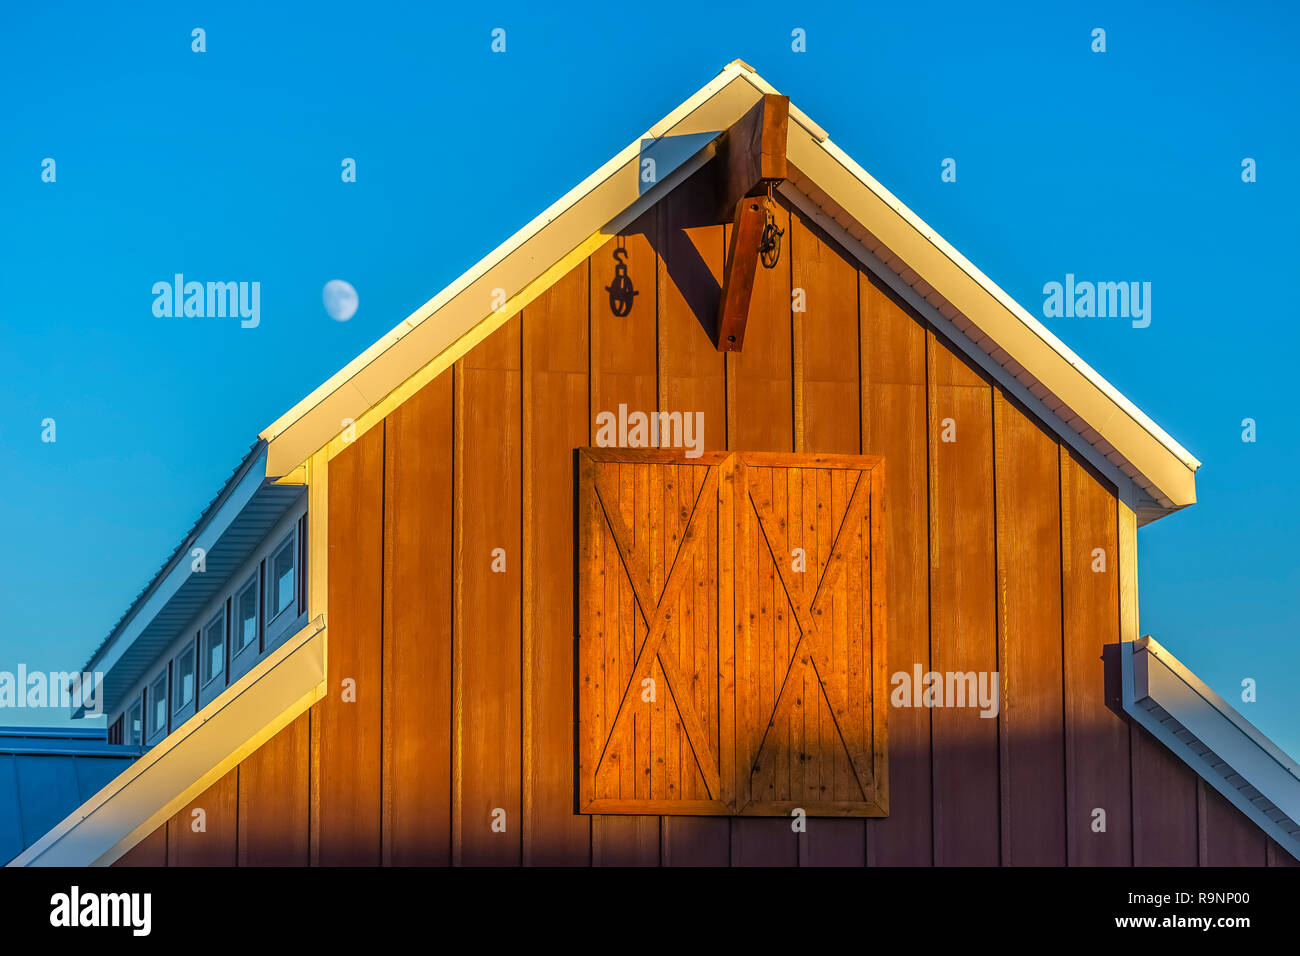 Barn looking clubhouse in Utah Valley near pool - Stock Image